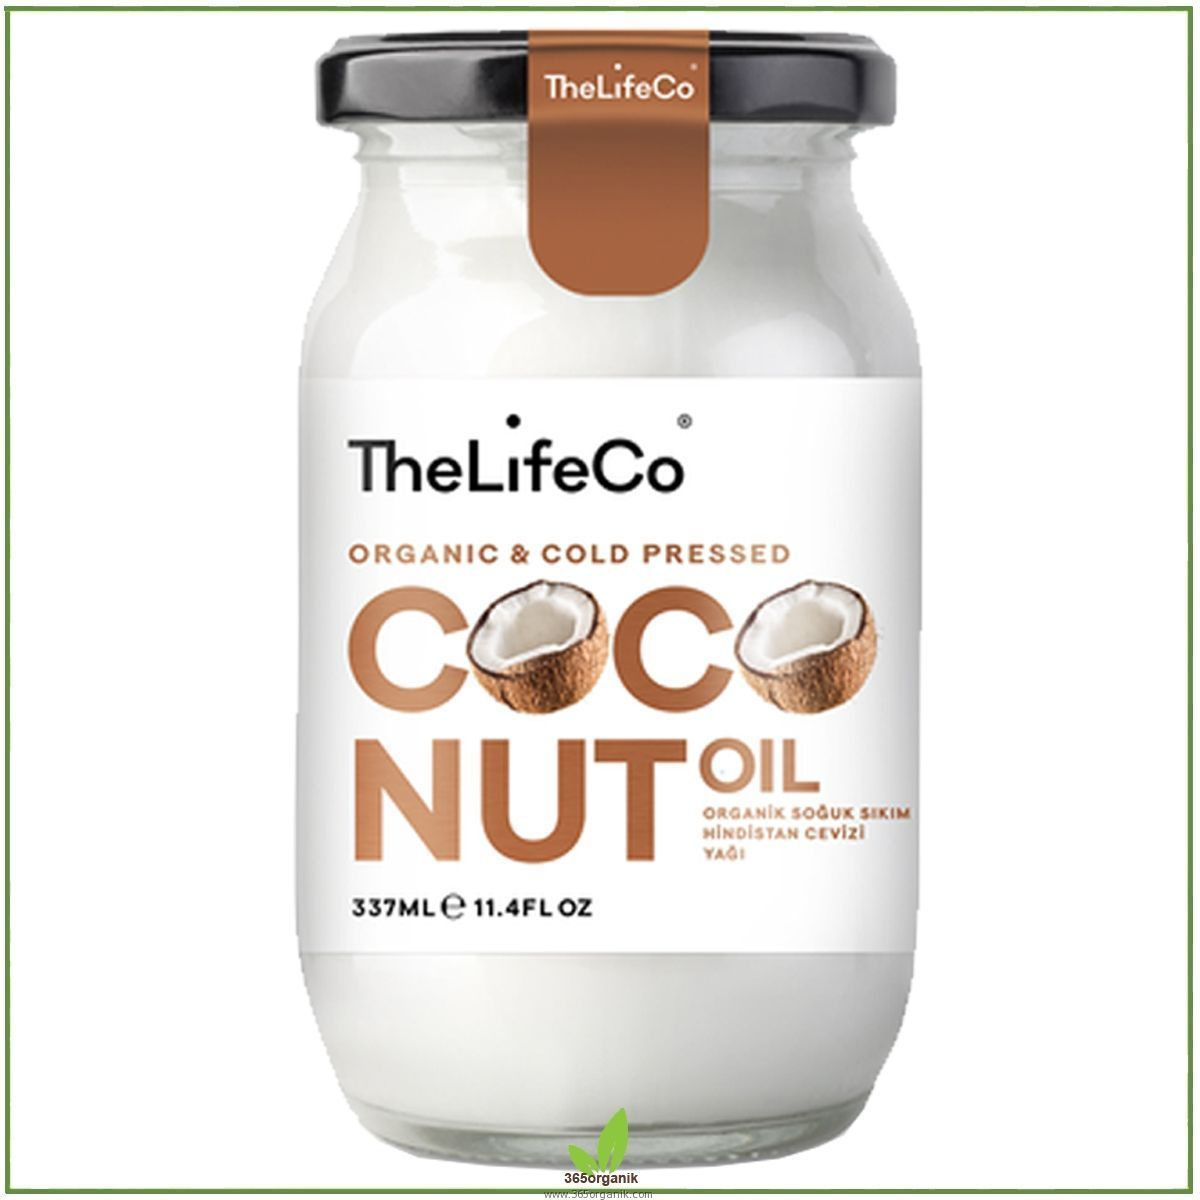 The LifeCo Organik Hindistan Cevizi Yağı - 337 ml